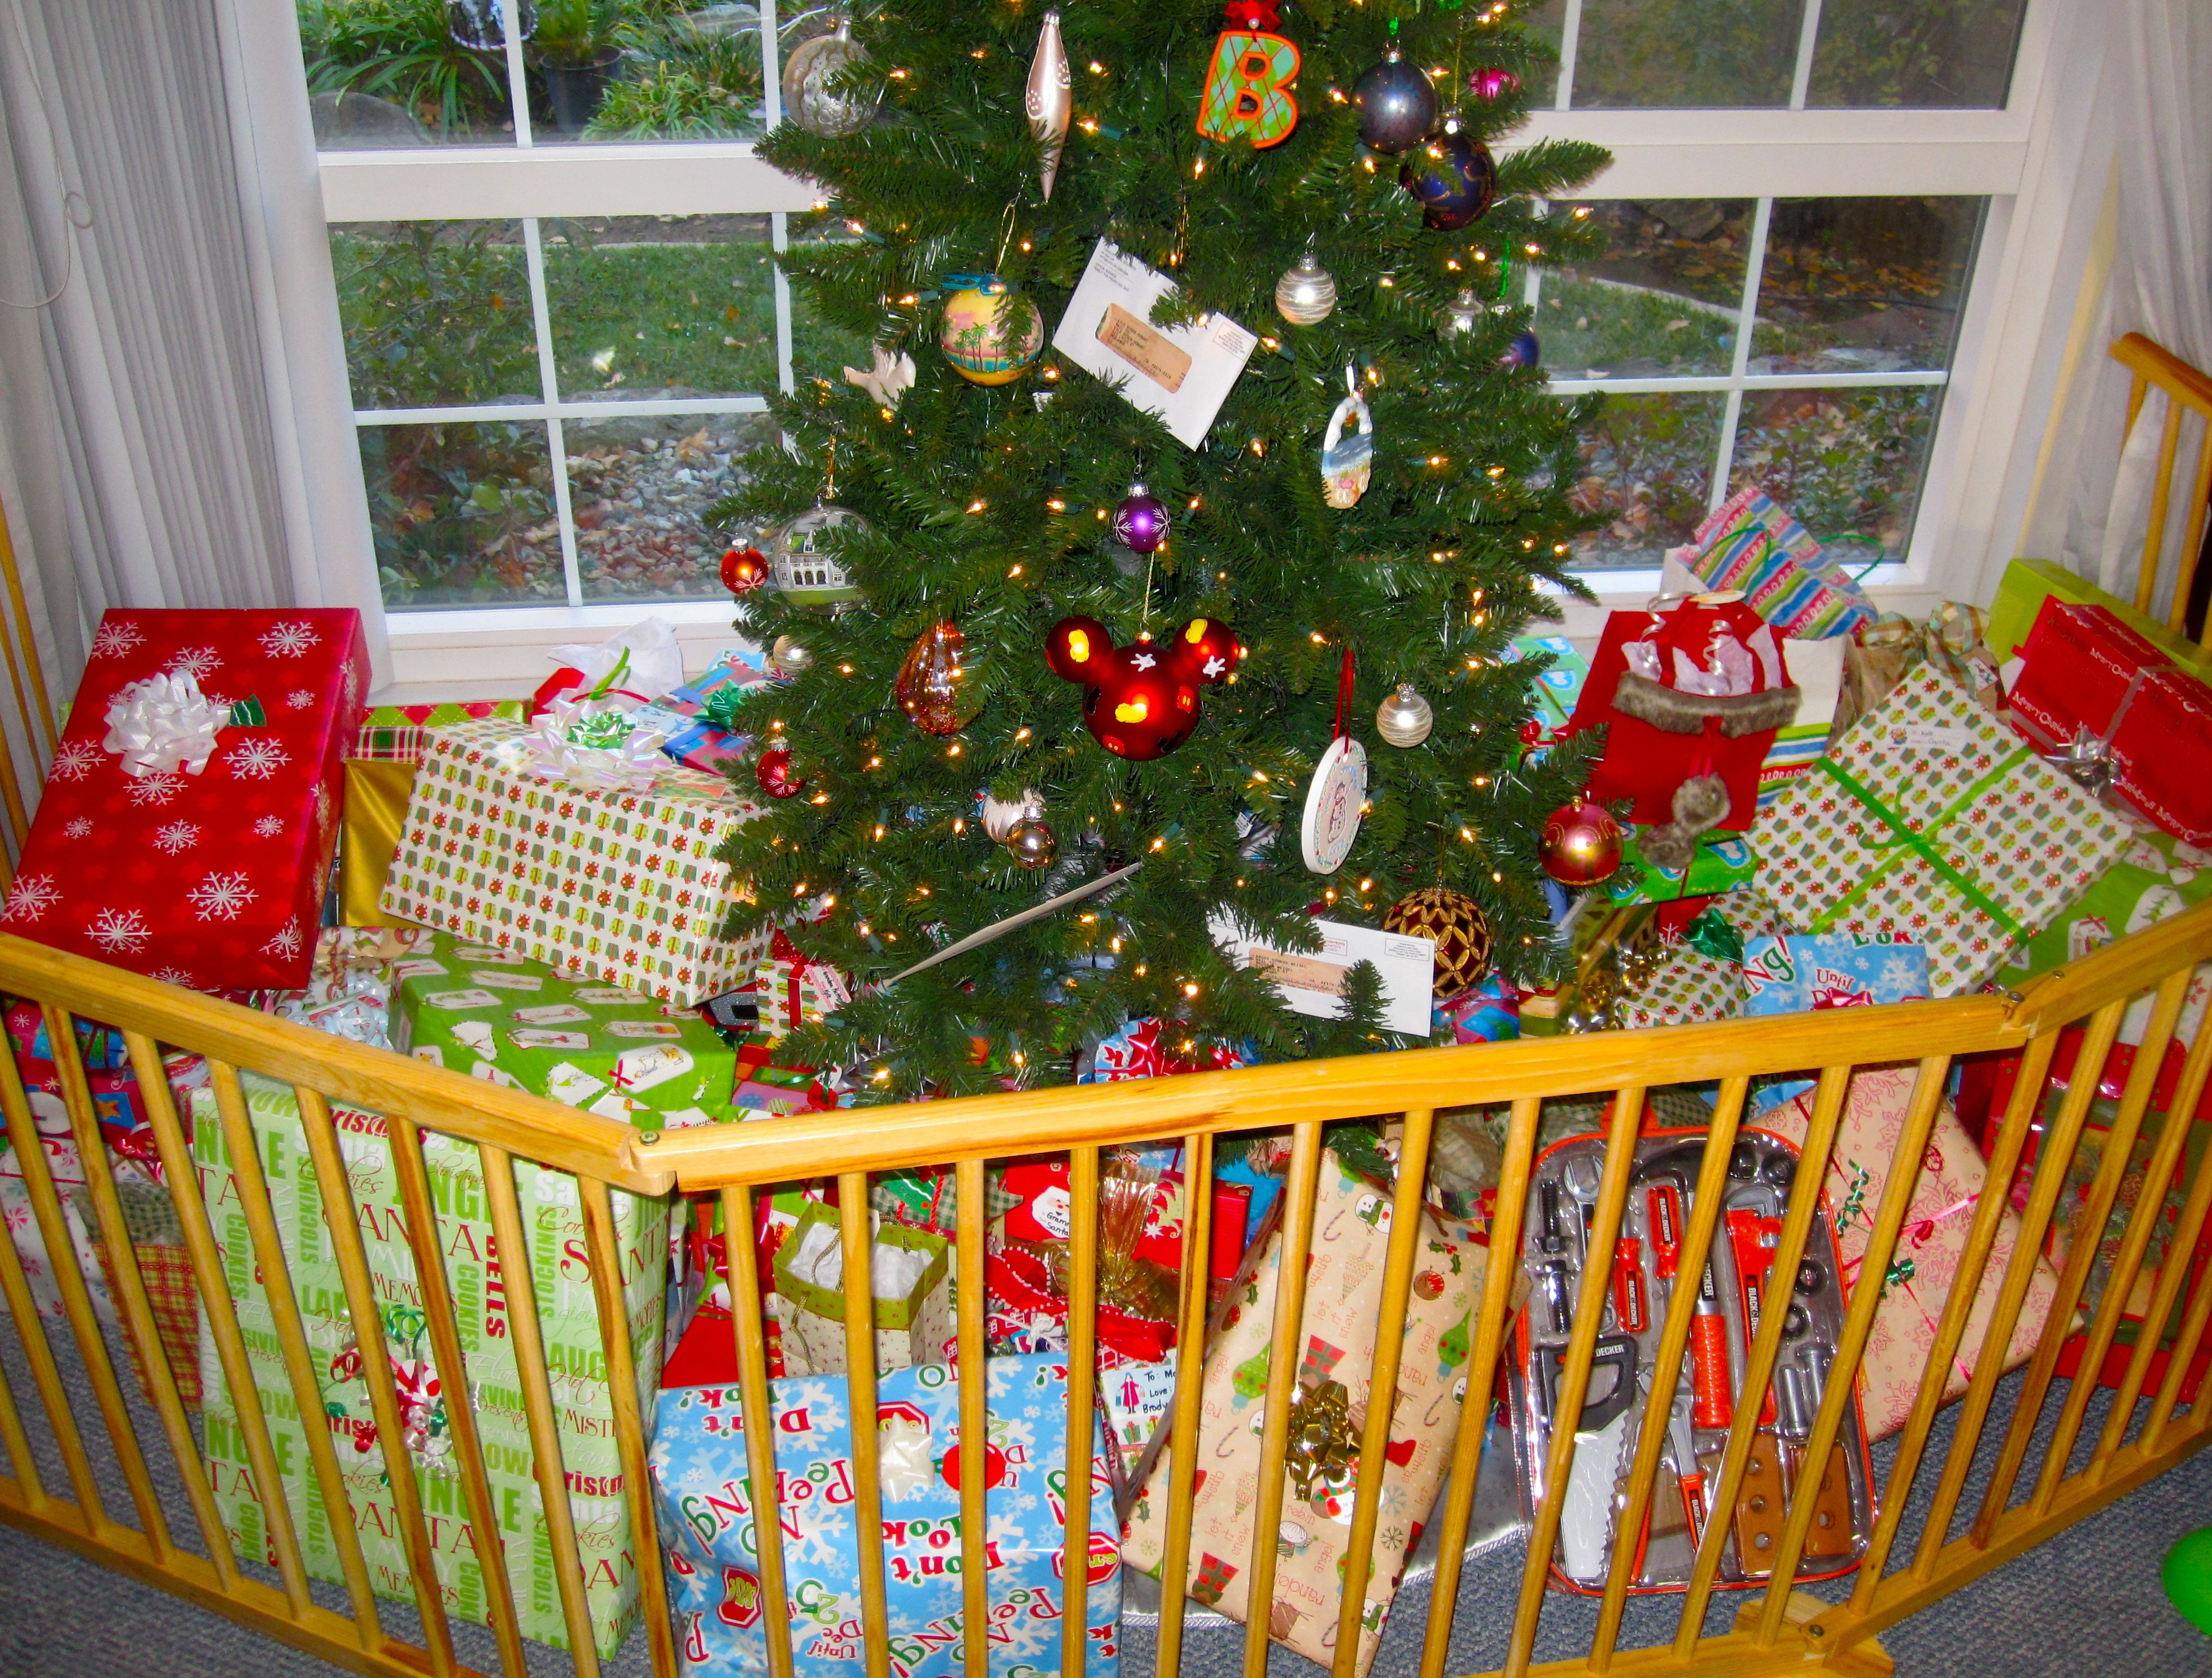 Toddler Proof Christmas Tree.How To Toddler Proof Your Christmas Tree The Organised